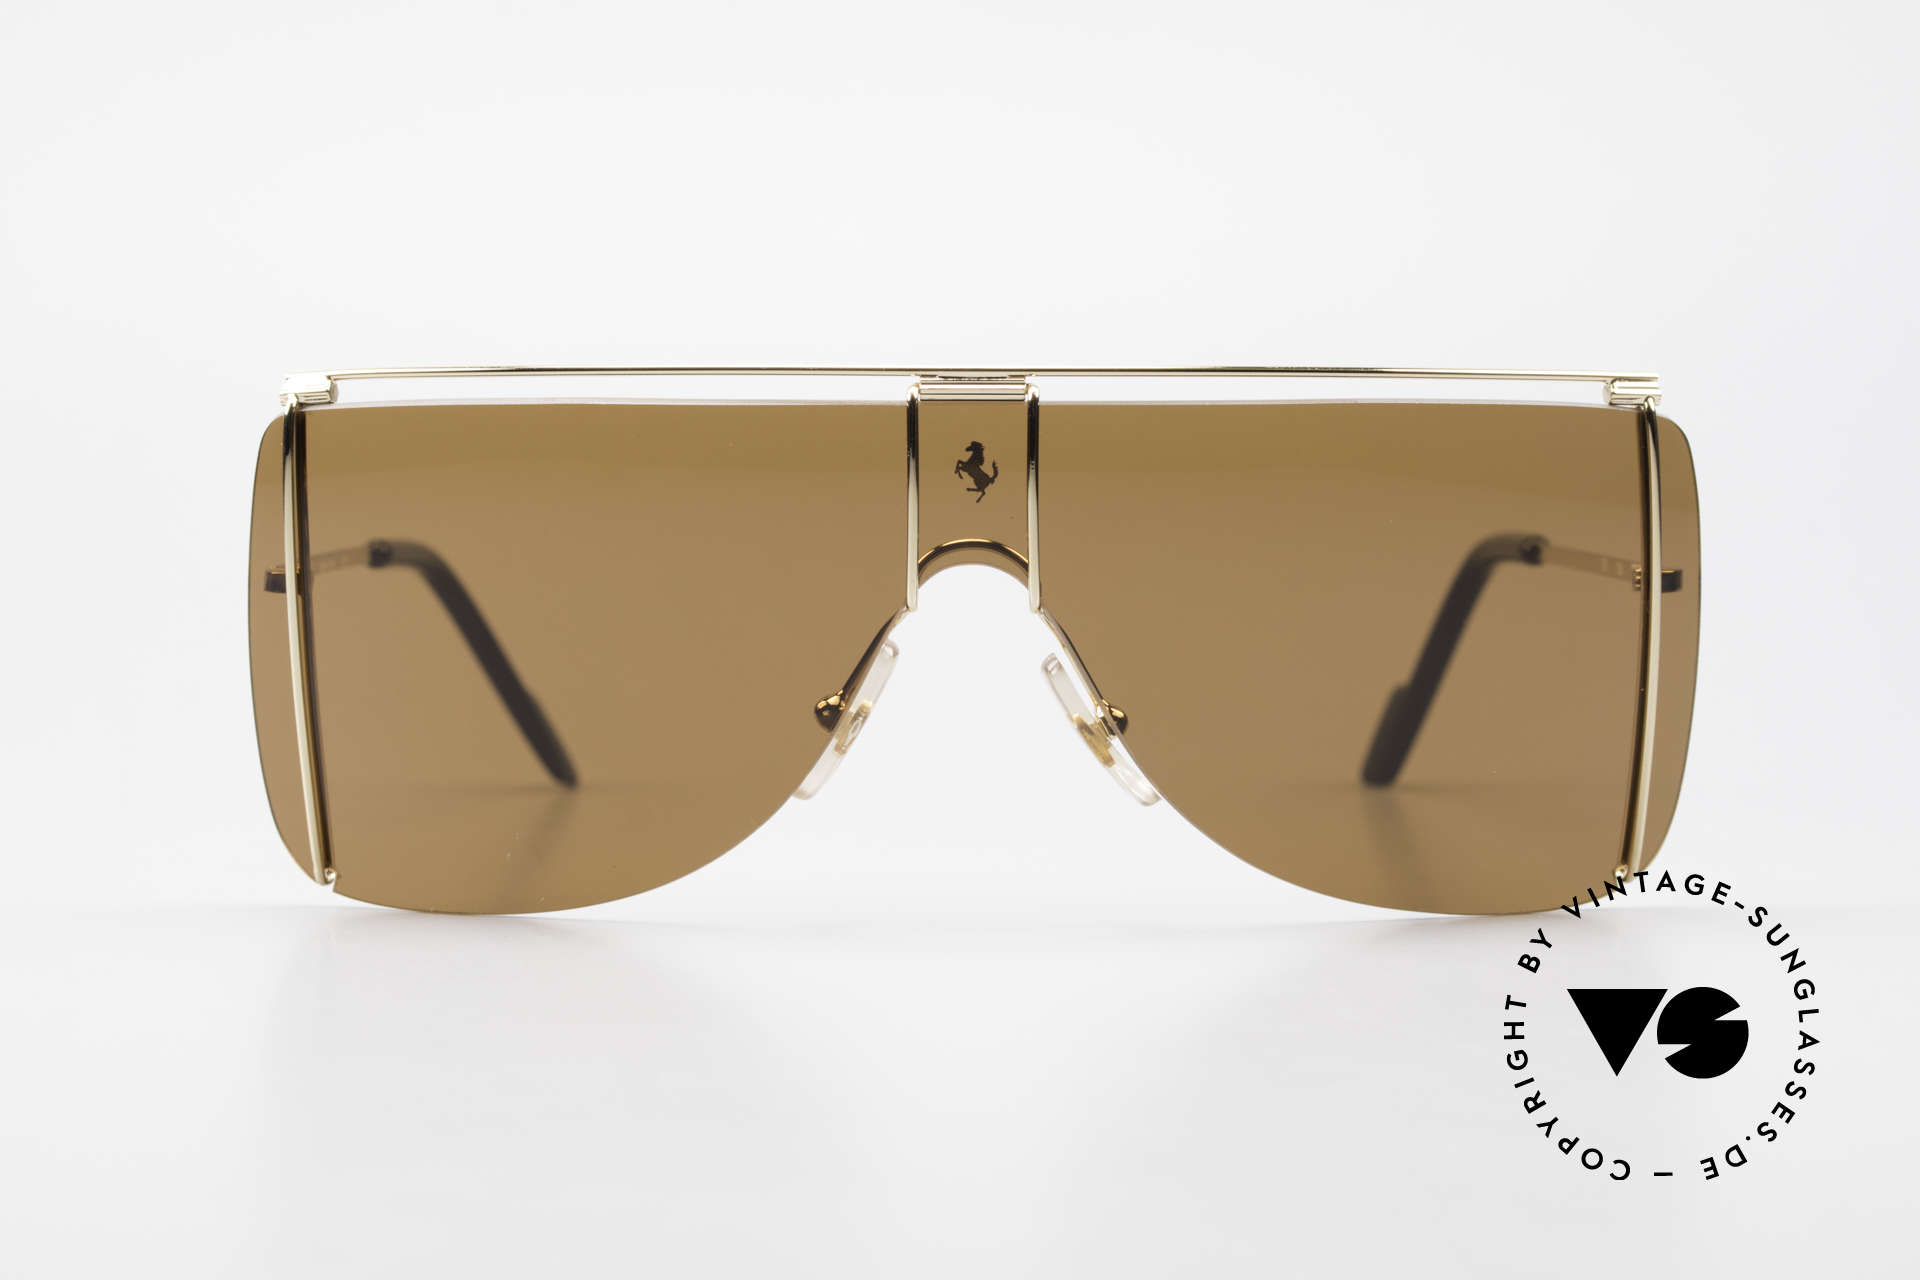 Ferrari F20/S Kylie Jenner Sunglasses, panorama view design with only one single lens, Made for Men and Women